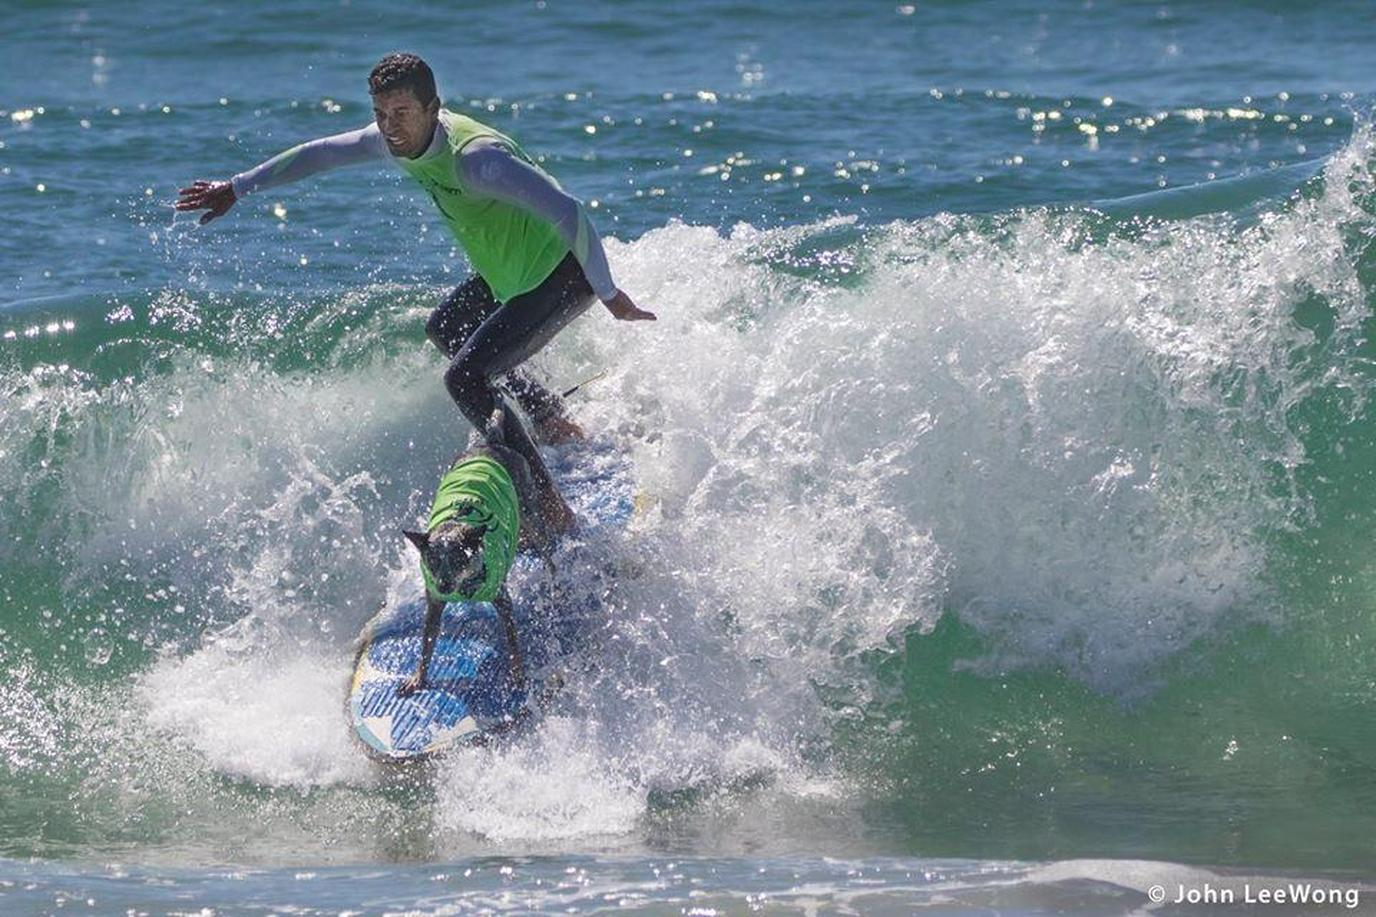 This Huntington Beach dog event allows human and canine surfers to show off surf skills for charity.